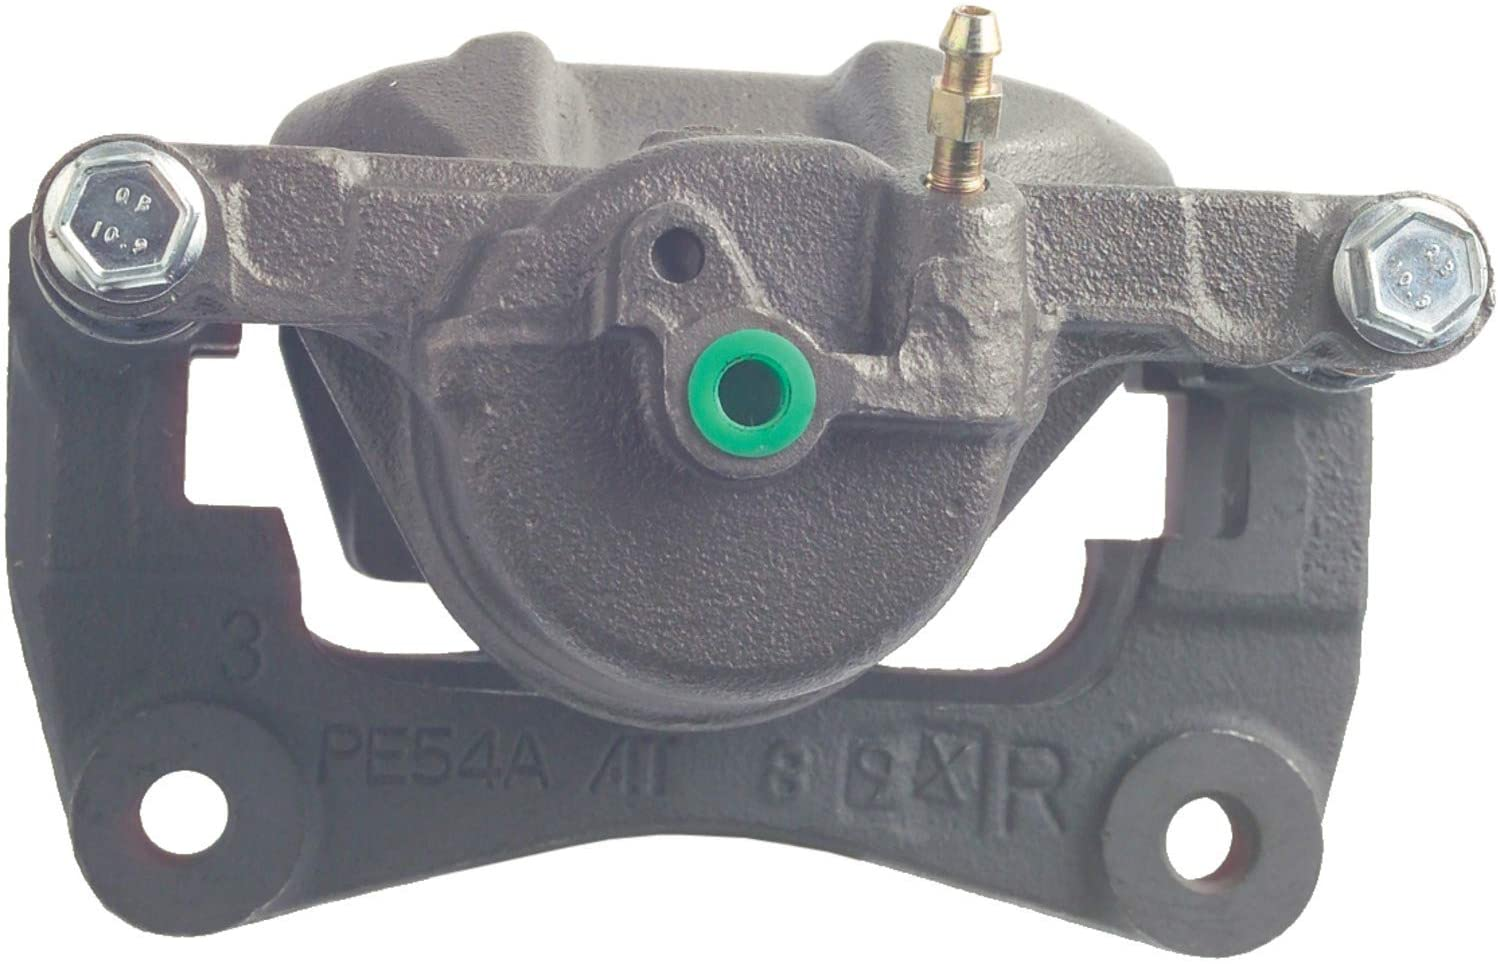 Cardone 19-B1813 Remanufactured Import Friction Ready (Unloaded) Brake Caliper